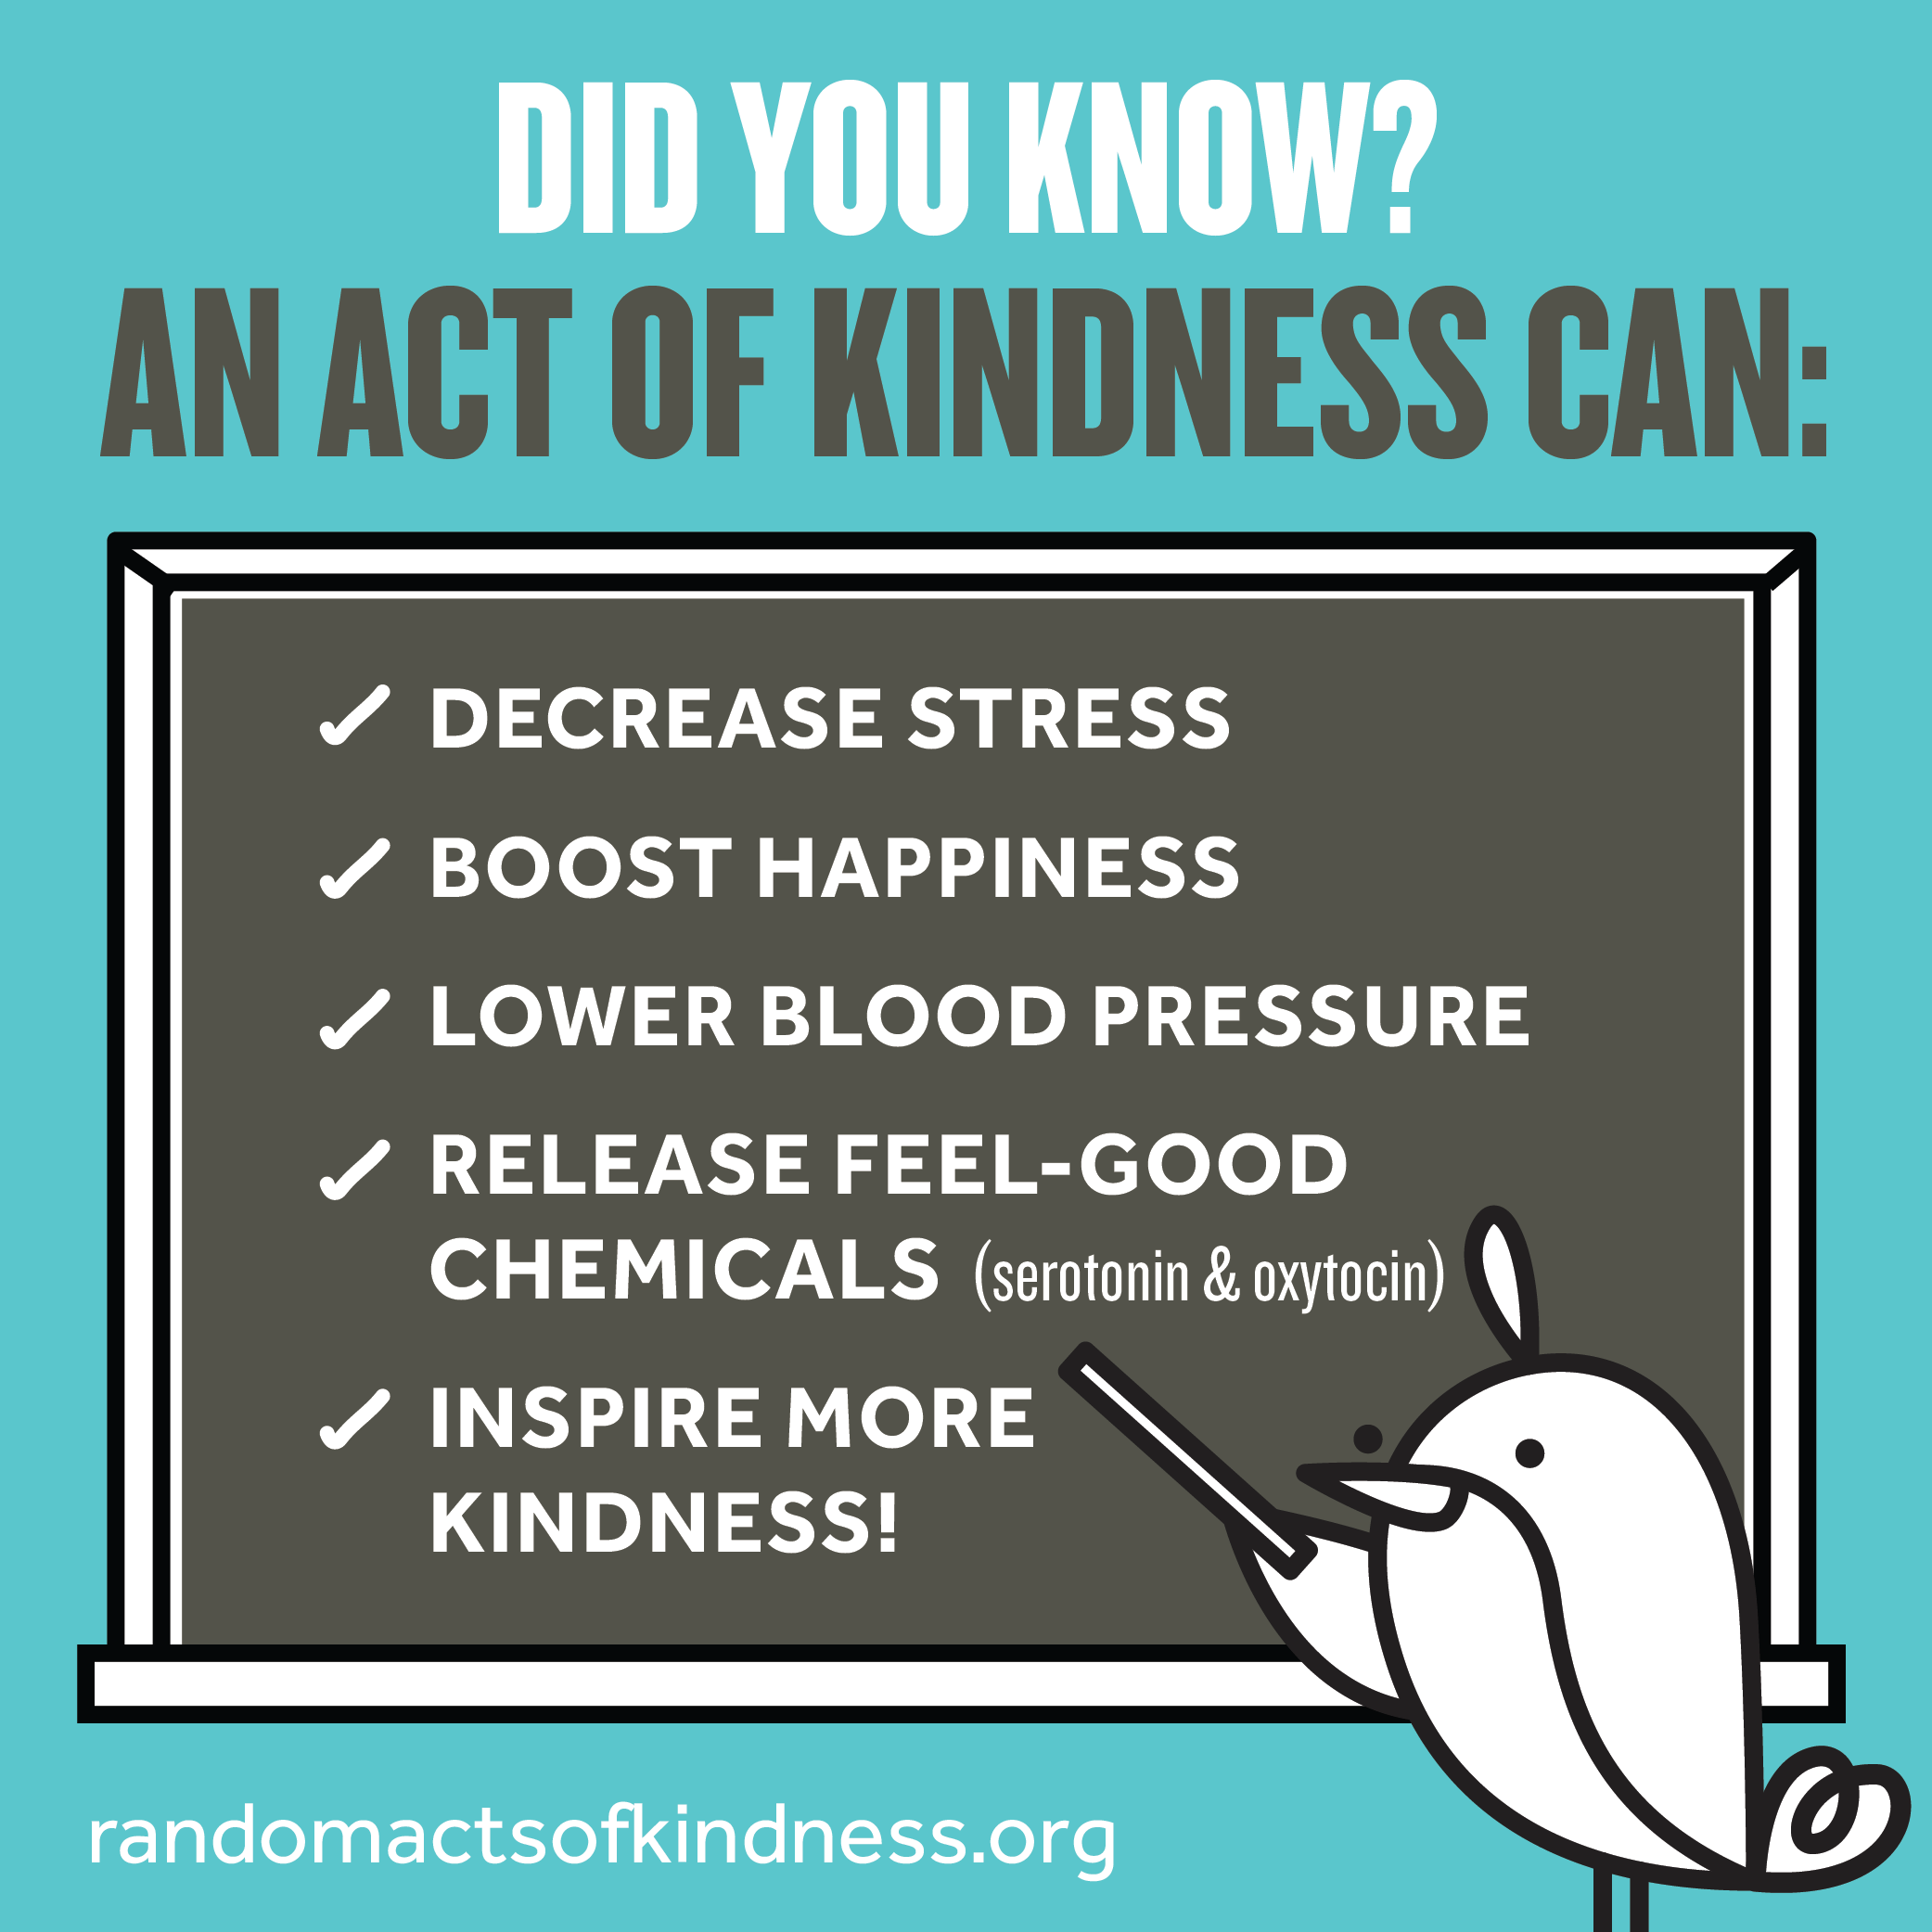 Happy Random Acts of Kindness Week!